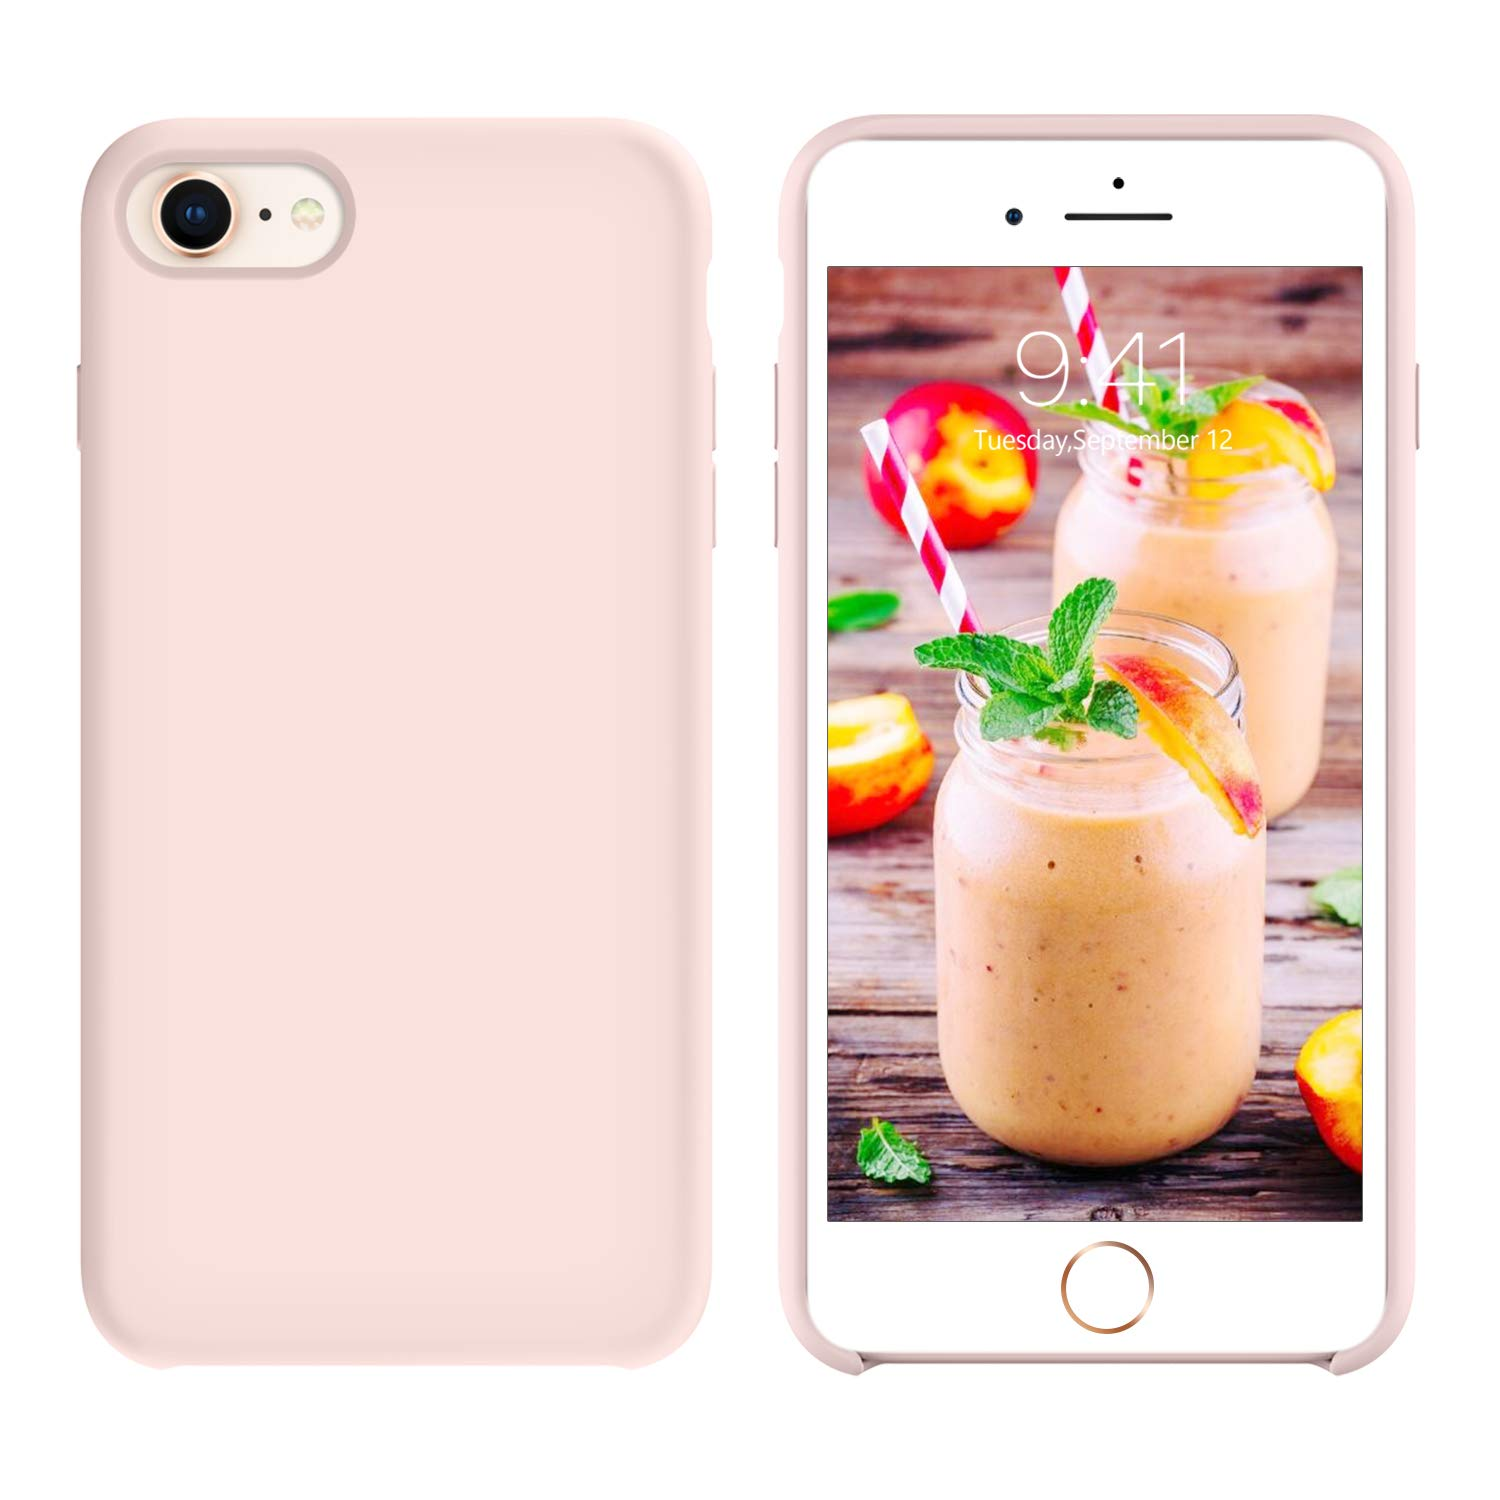 GUAGUA iPhone 8 Case iPhone 7 Case Liquid Silicone Gel Rubber Cover with Soft Microfiber Cloth Lining Cushion Slim Fit Lightweight Shockproof ...